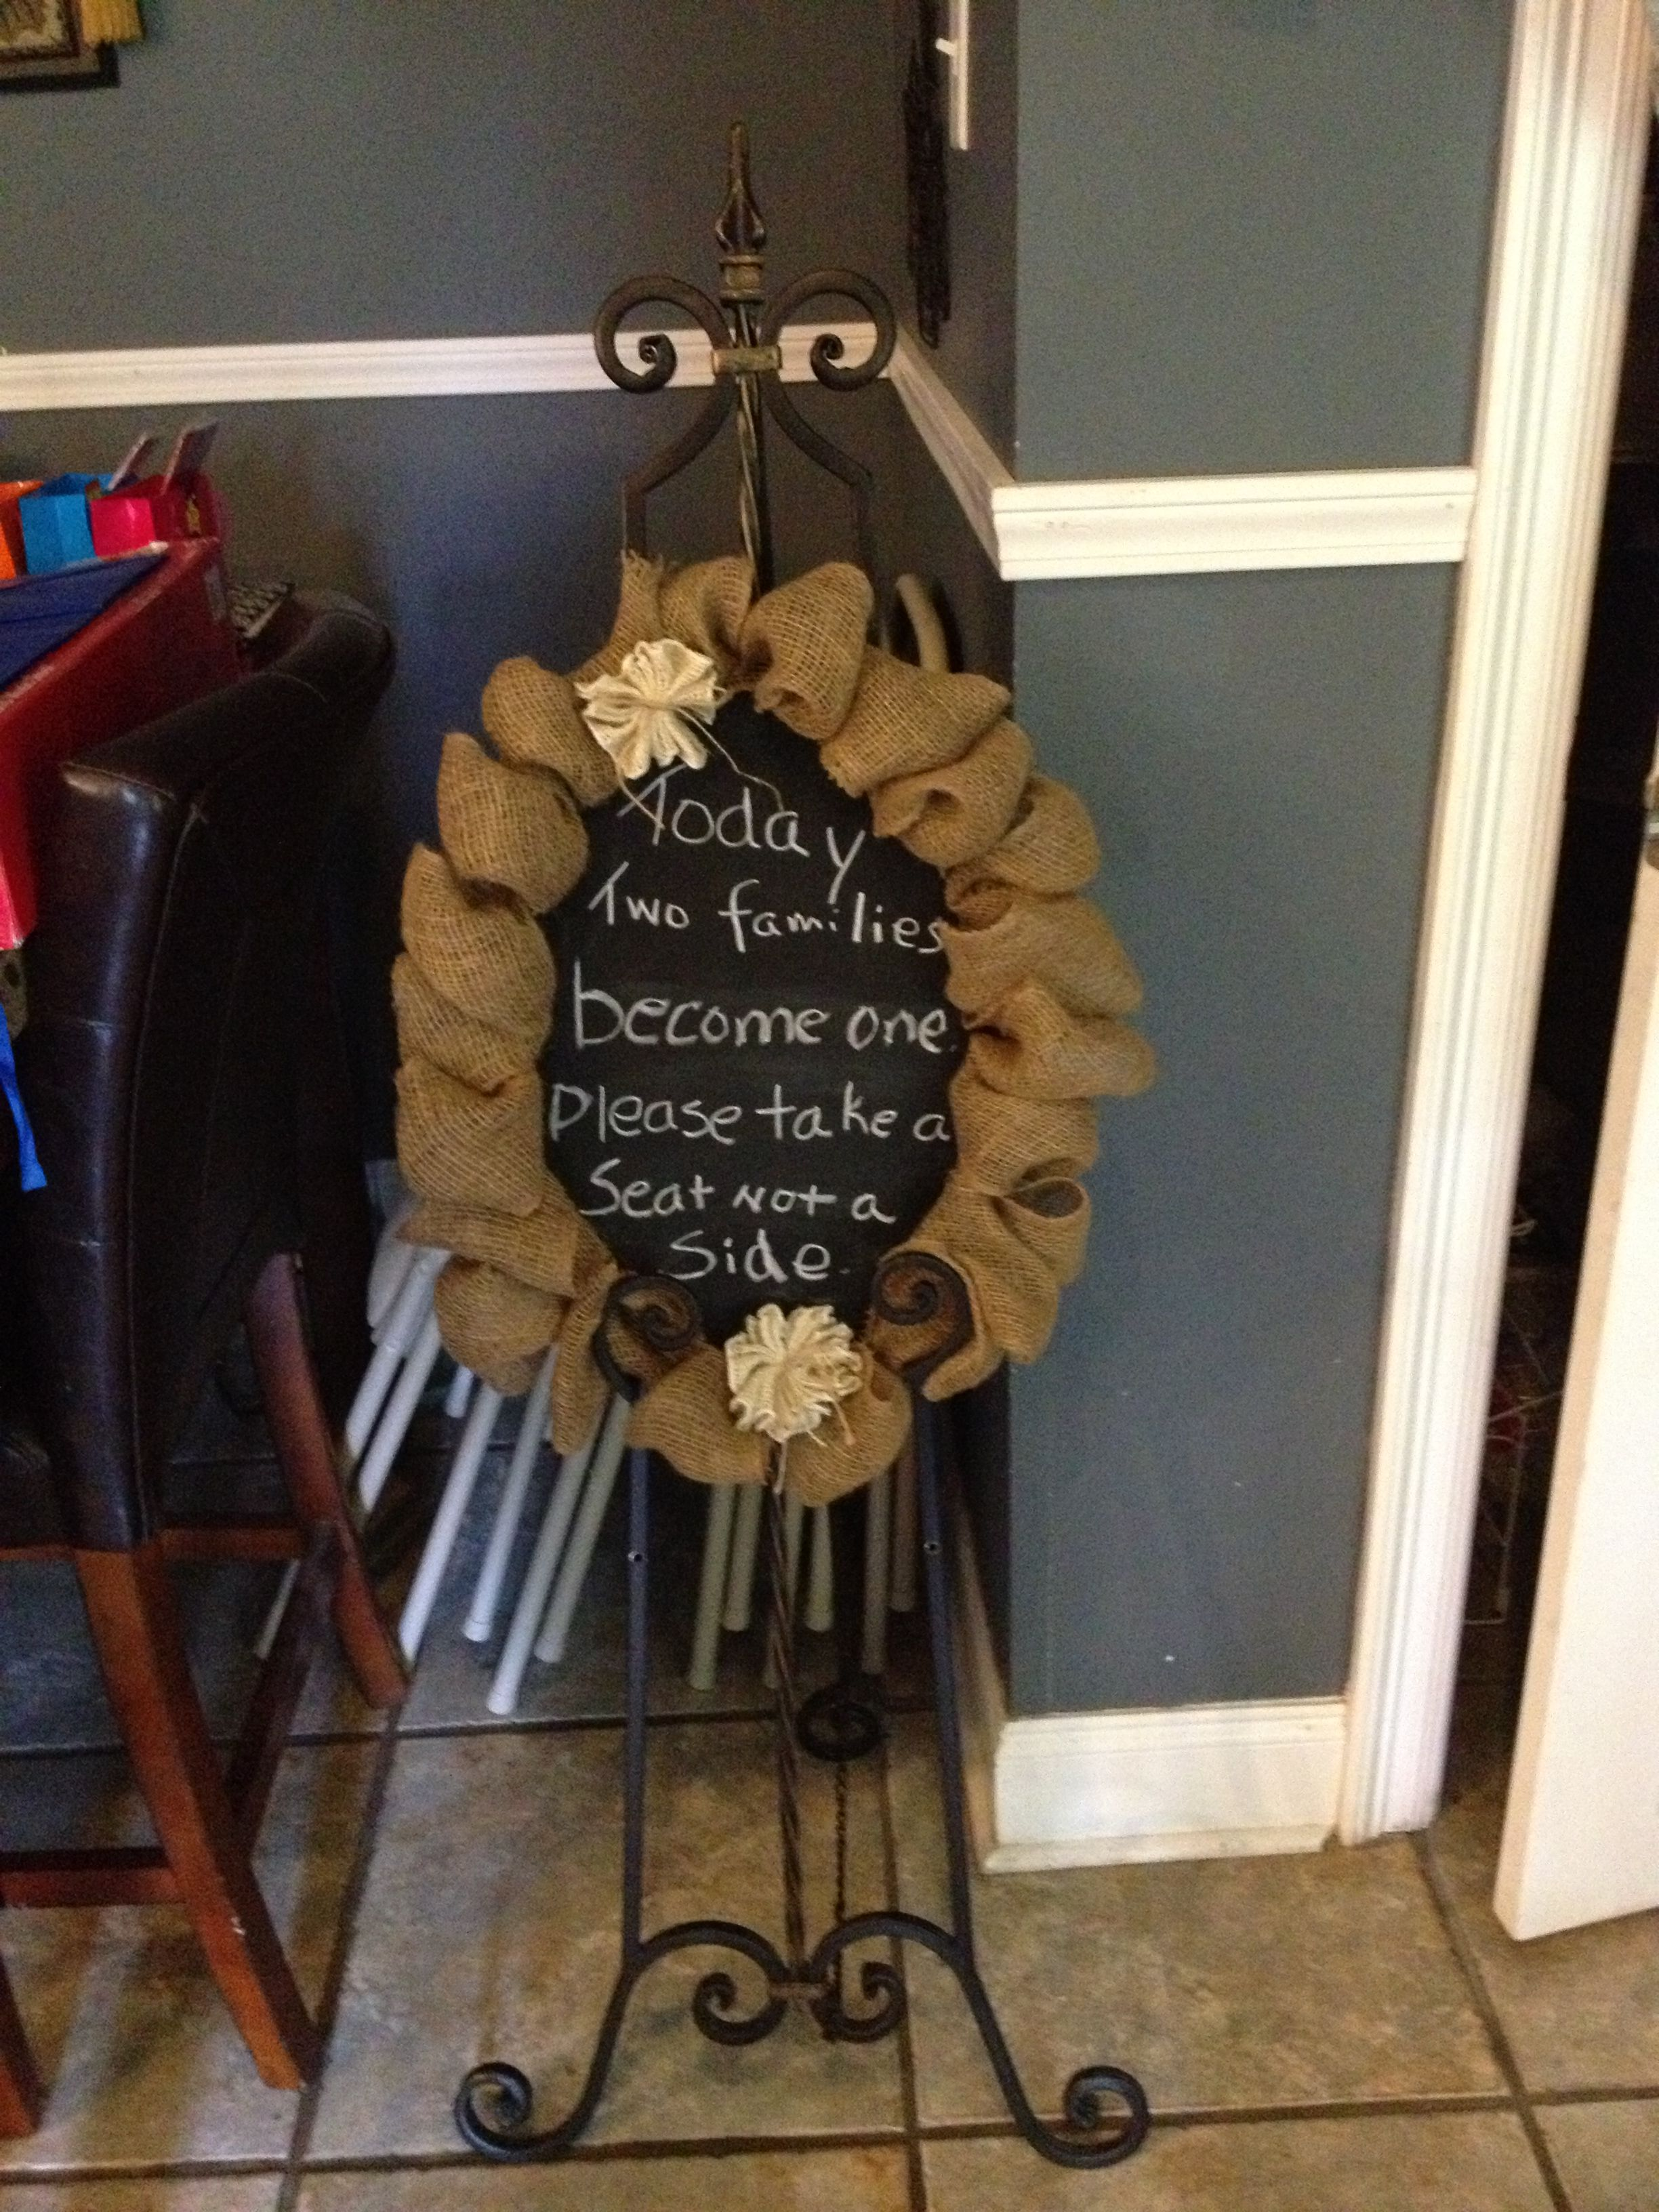 Love what you can do with chalkboard paint!